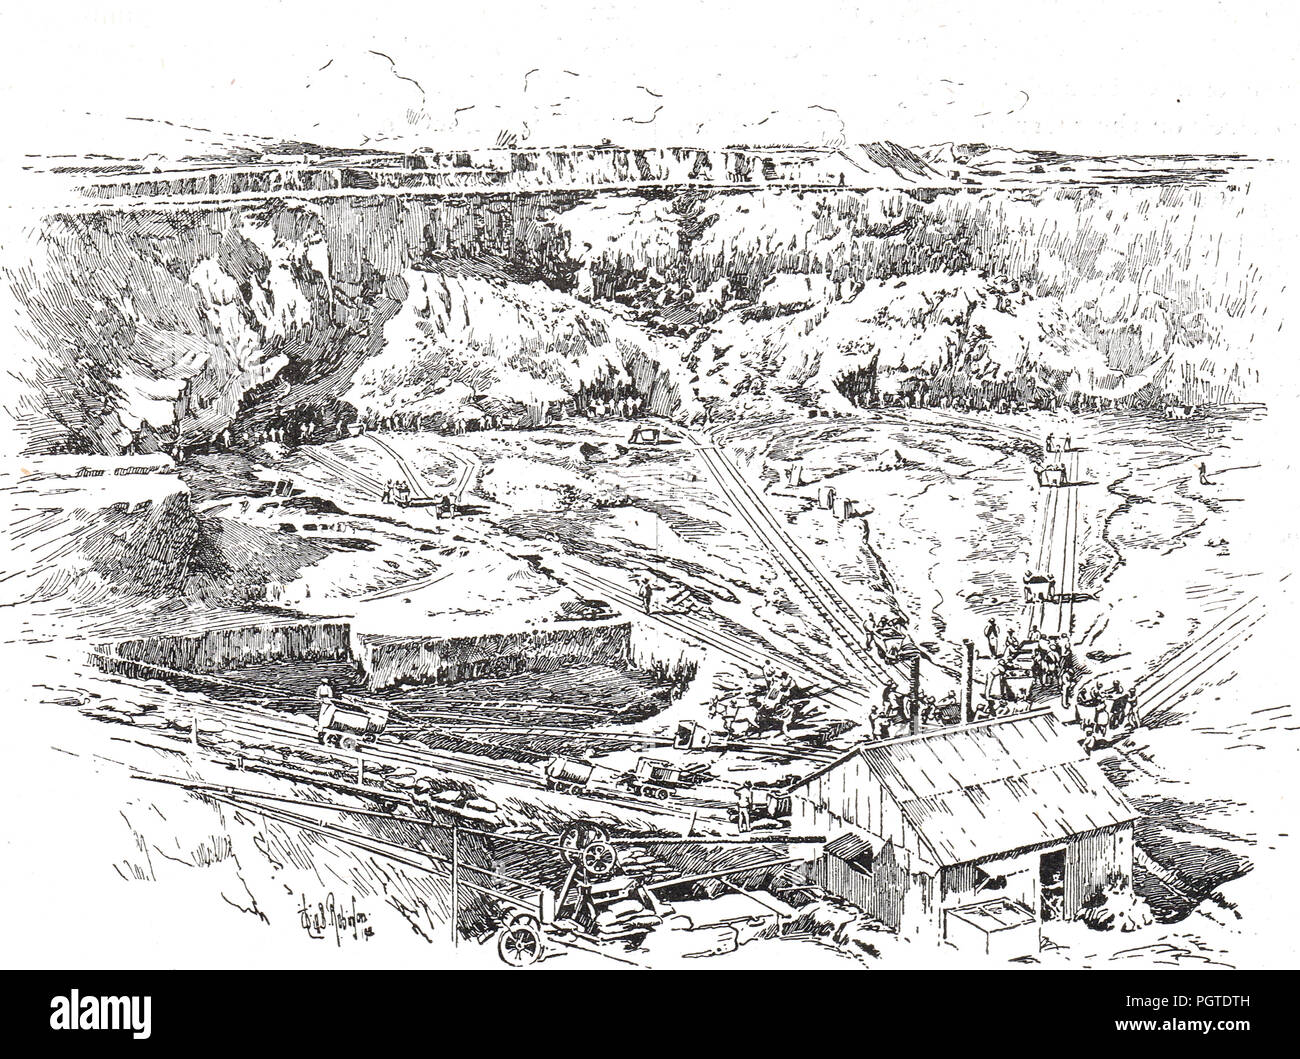 A diamond mine in Kimberley, Northern Cape, South Africa, circa 1900.  Location of  the Siege of Kimberley which took place during the Second Boer War - Stock Image